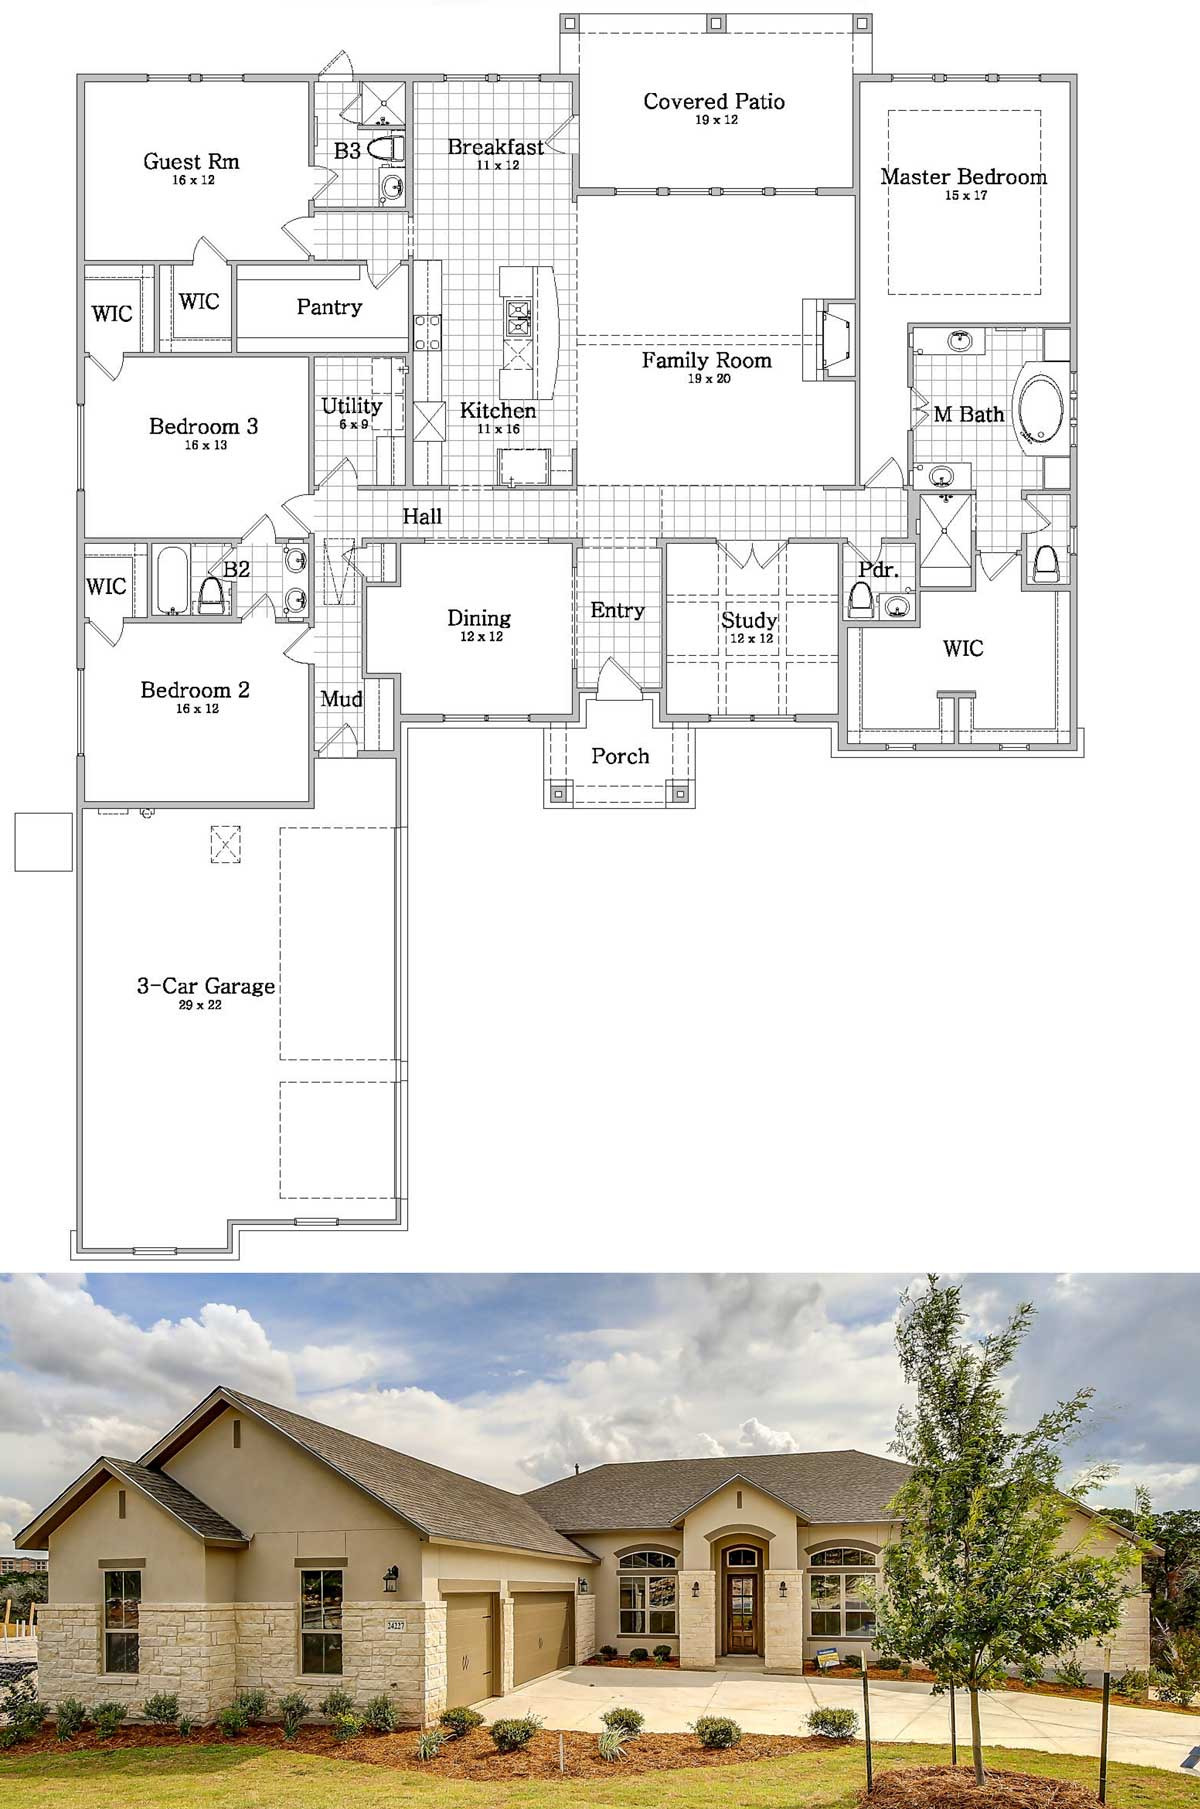 House Plans In Texas Lovely Campania Energy Efficient Floor Plans for New Homes In San